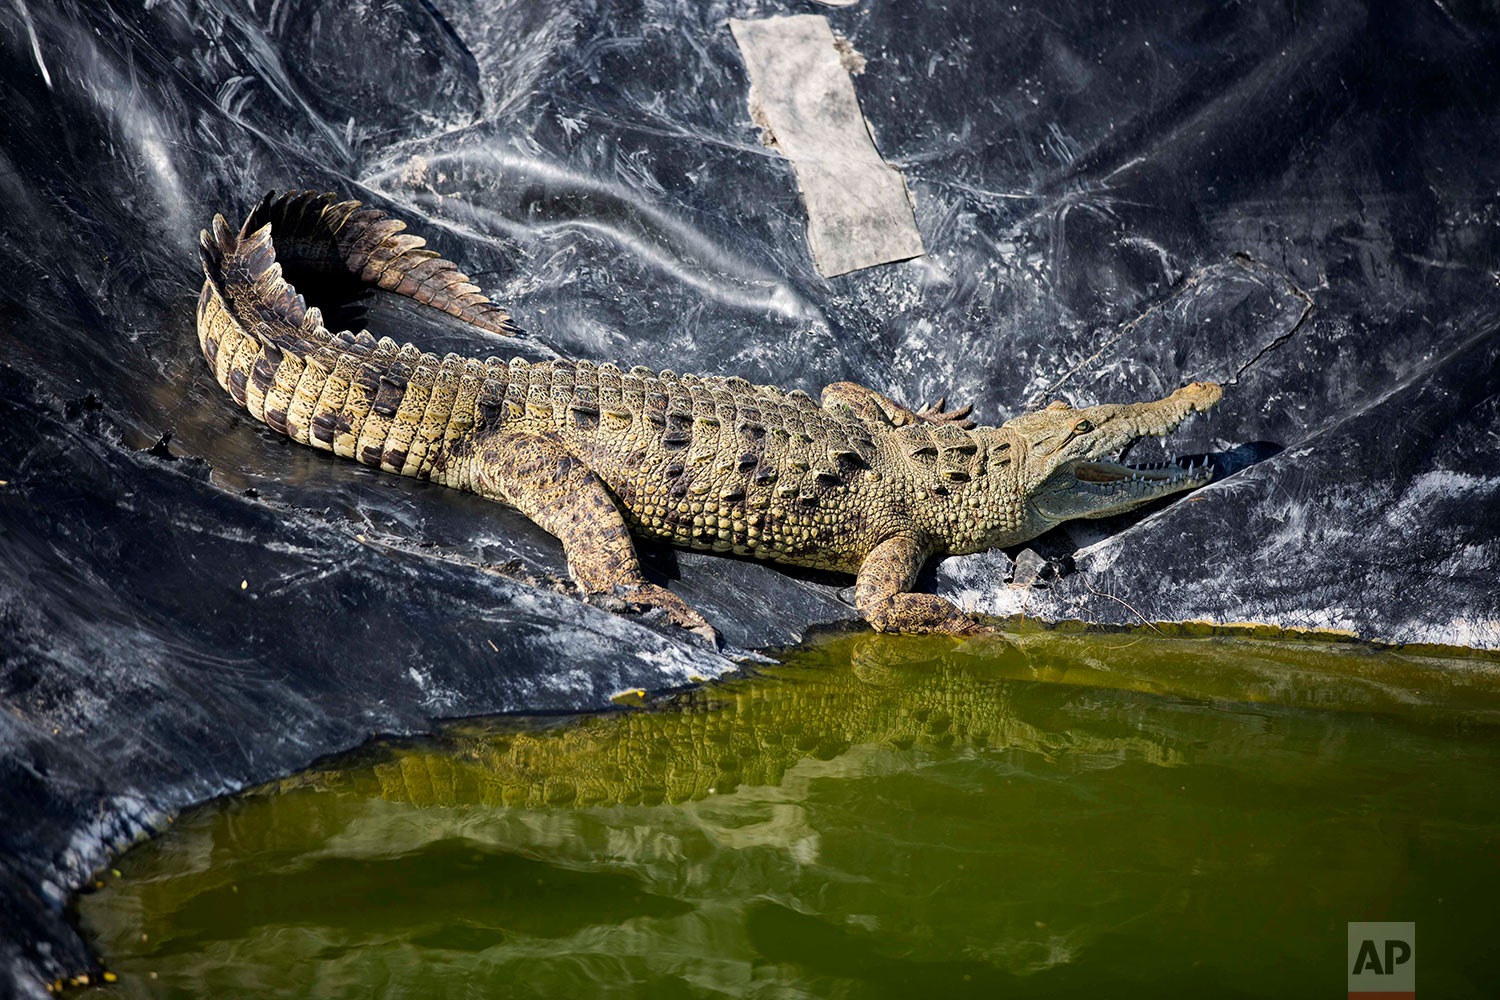 In this April 19, 2018 photo, an alligator sunbathes in the water treatment area of the Taino Aqua Farm fish plant, next to Lake Azuei in Fond Parisien, Haiti. The fish farm treats the water that gets bloody from the processing of its tilapia fish, before sending it to the town's sewage system. The alligator was acquired from a local fisherman and put here to isolate it, where workers feed it and give it fresh water. (AP Photo/Dieu Nalio Chery)